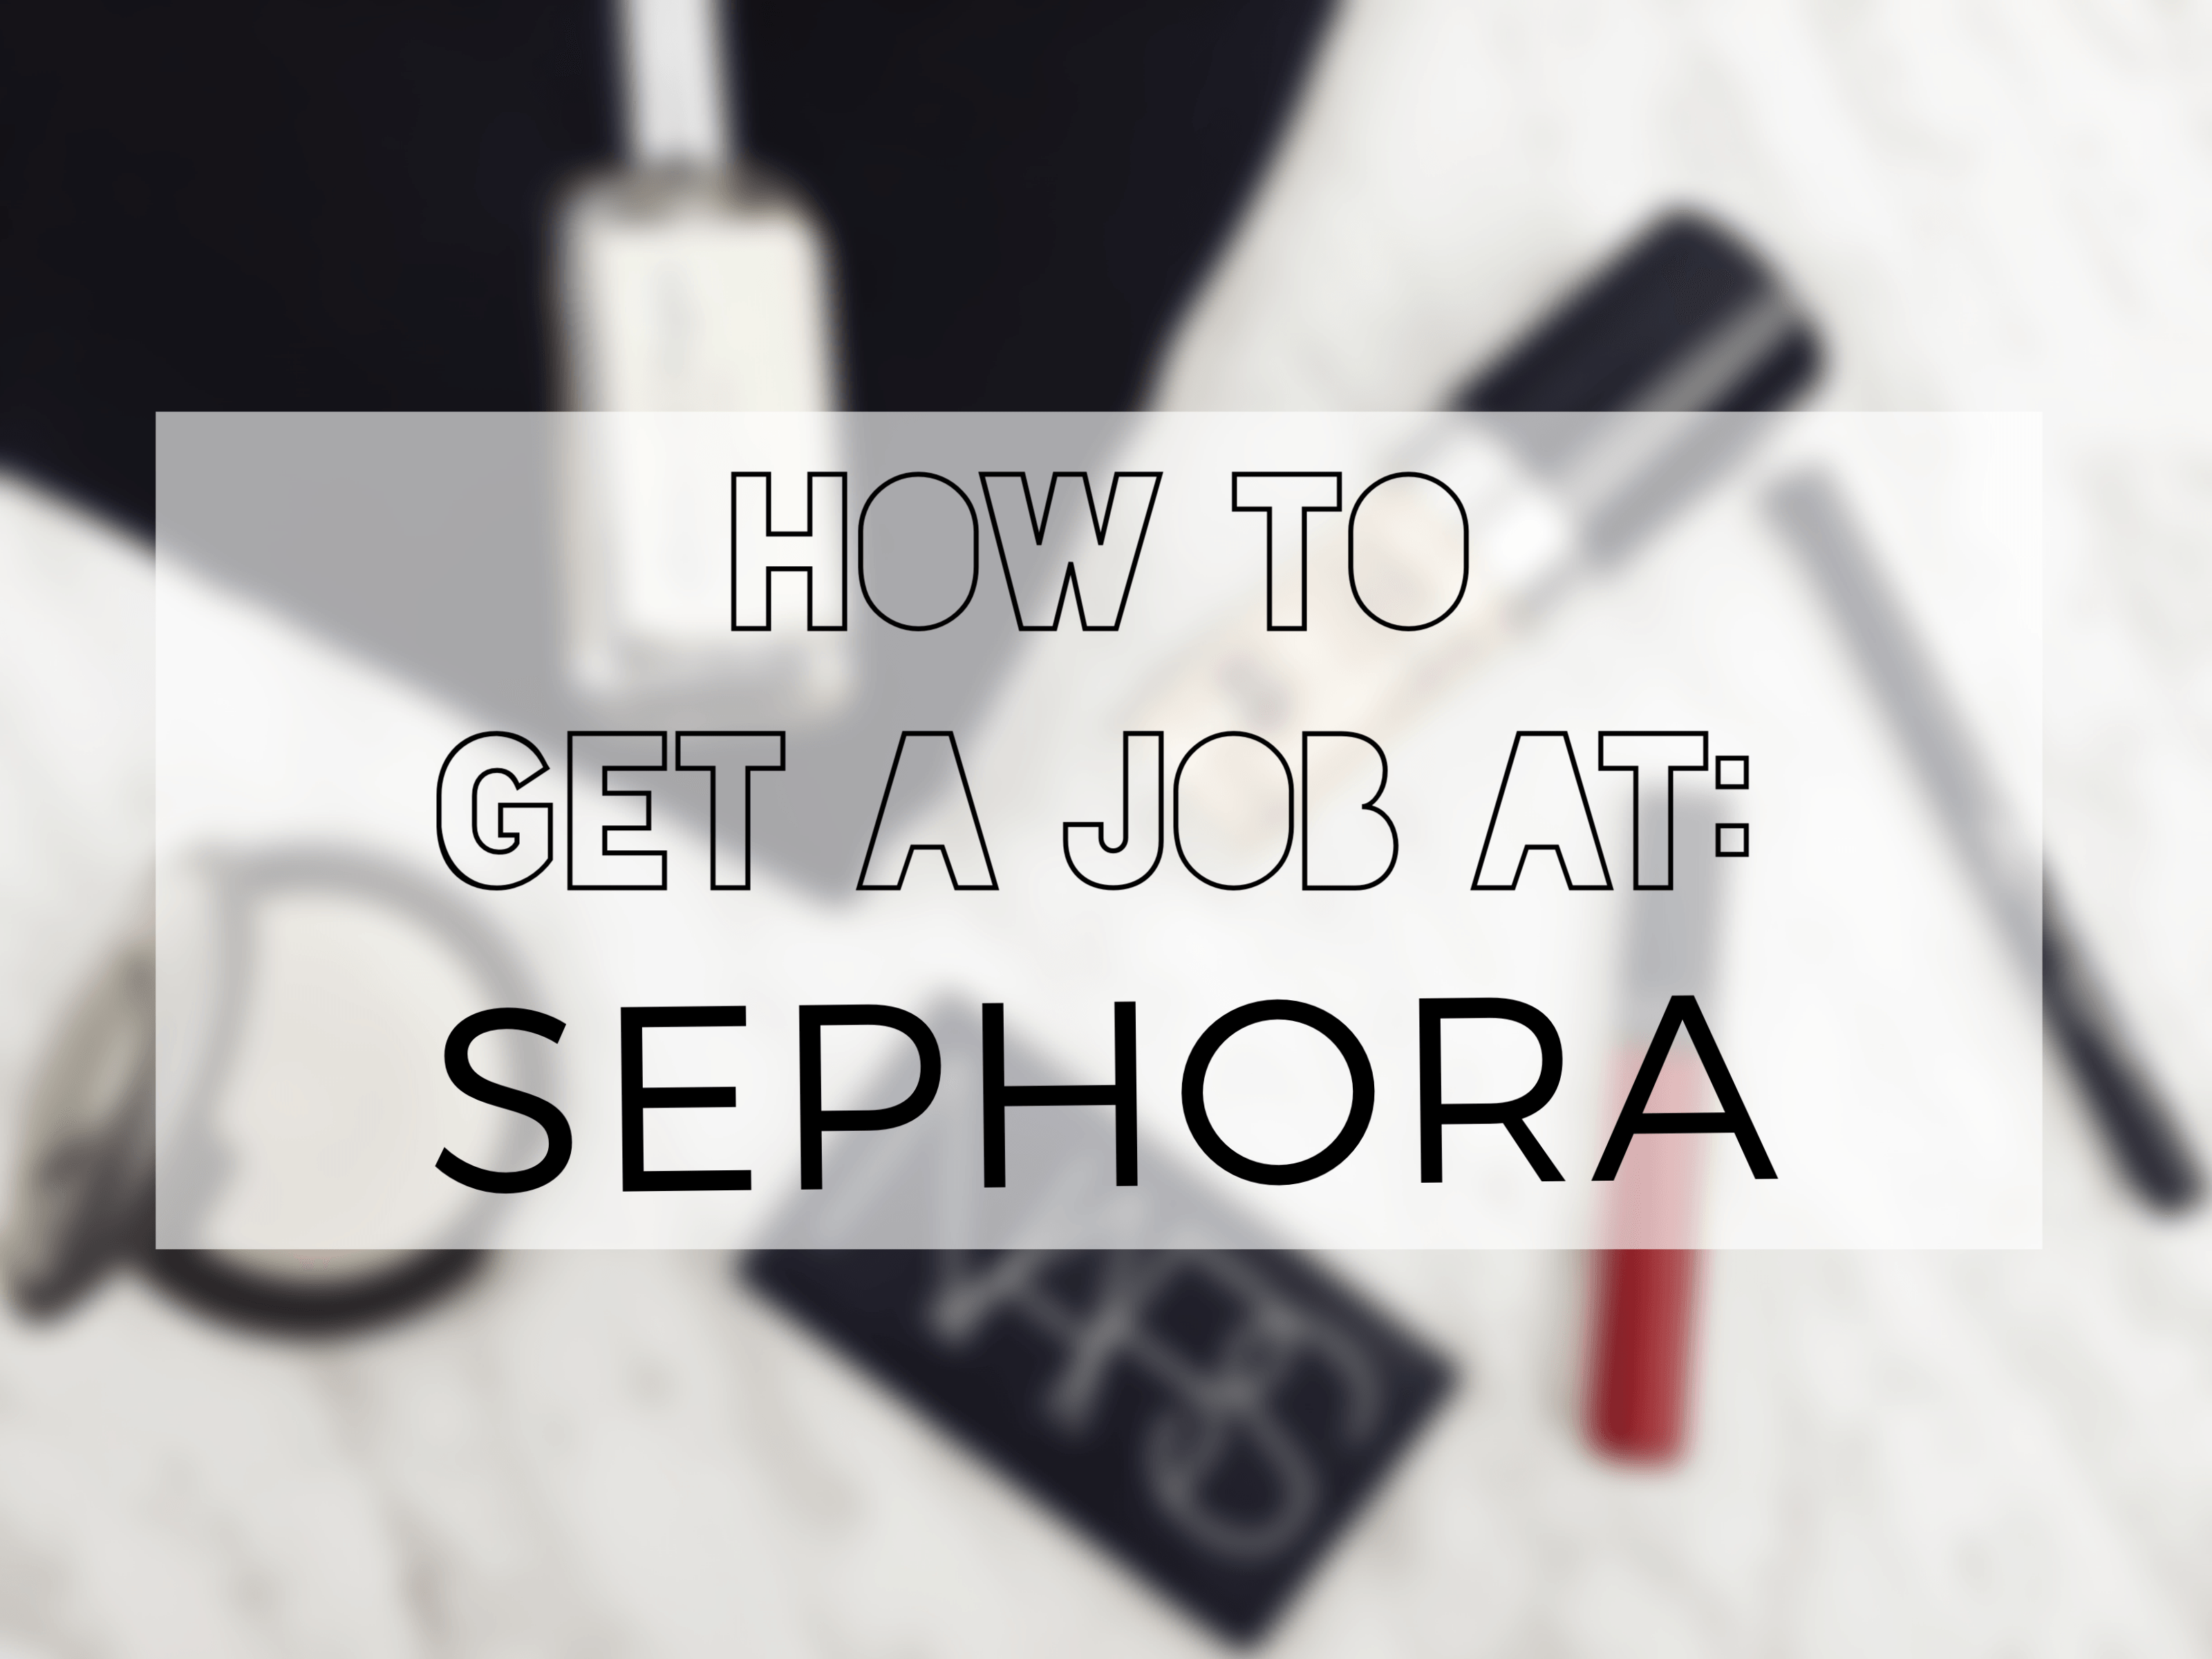 how to get a job at sephora